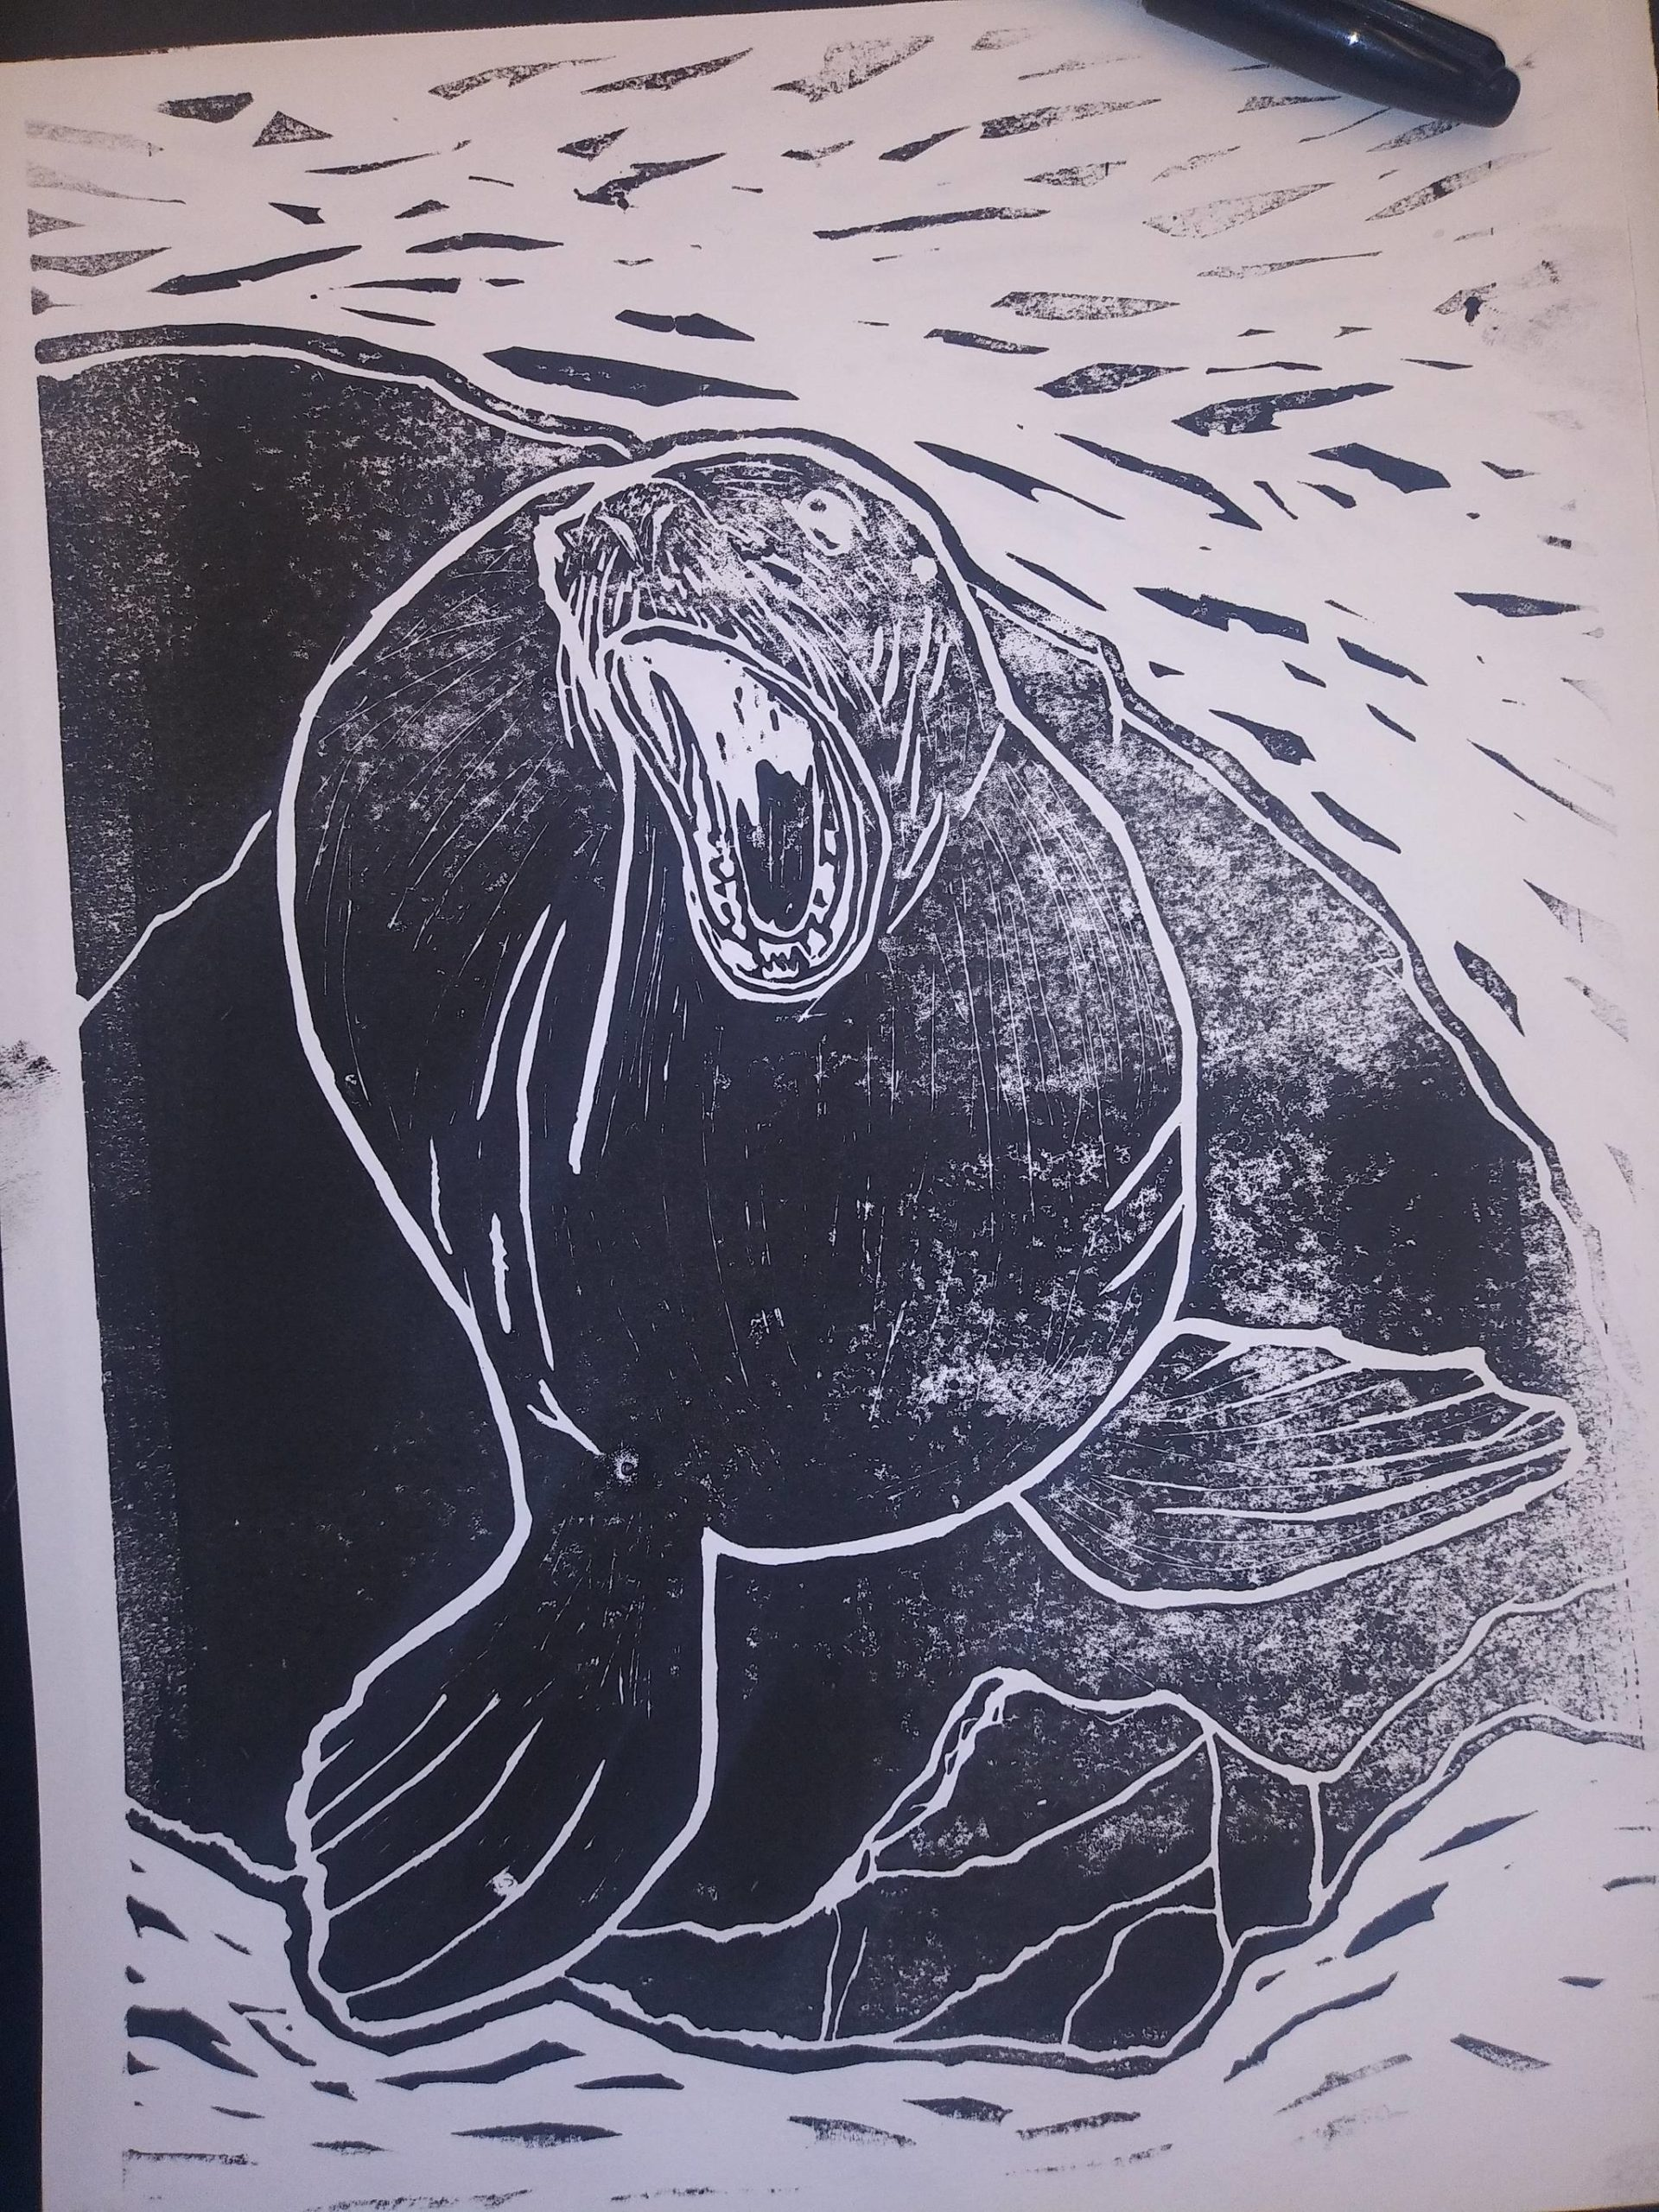 Linoleum prints made by Seward Middle and High School students are seen here in this undated photo. Anyone who brings in a receipt to one of three locations on the peninsula showing they donated $10 or more to the Alaska SeaLife Center in Seward gets to take home a print of their choice. (Photo courtesy Megan Wiley)